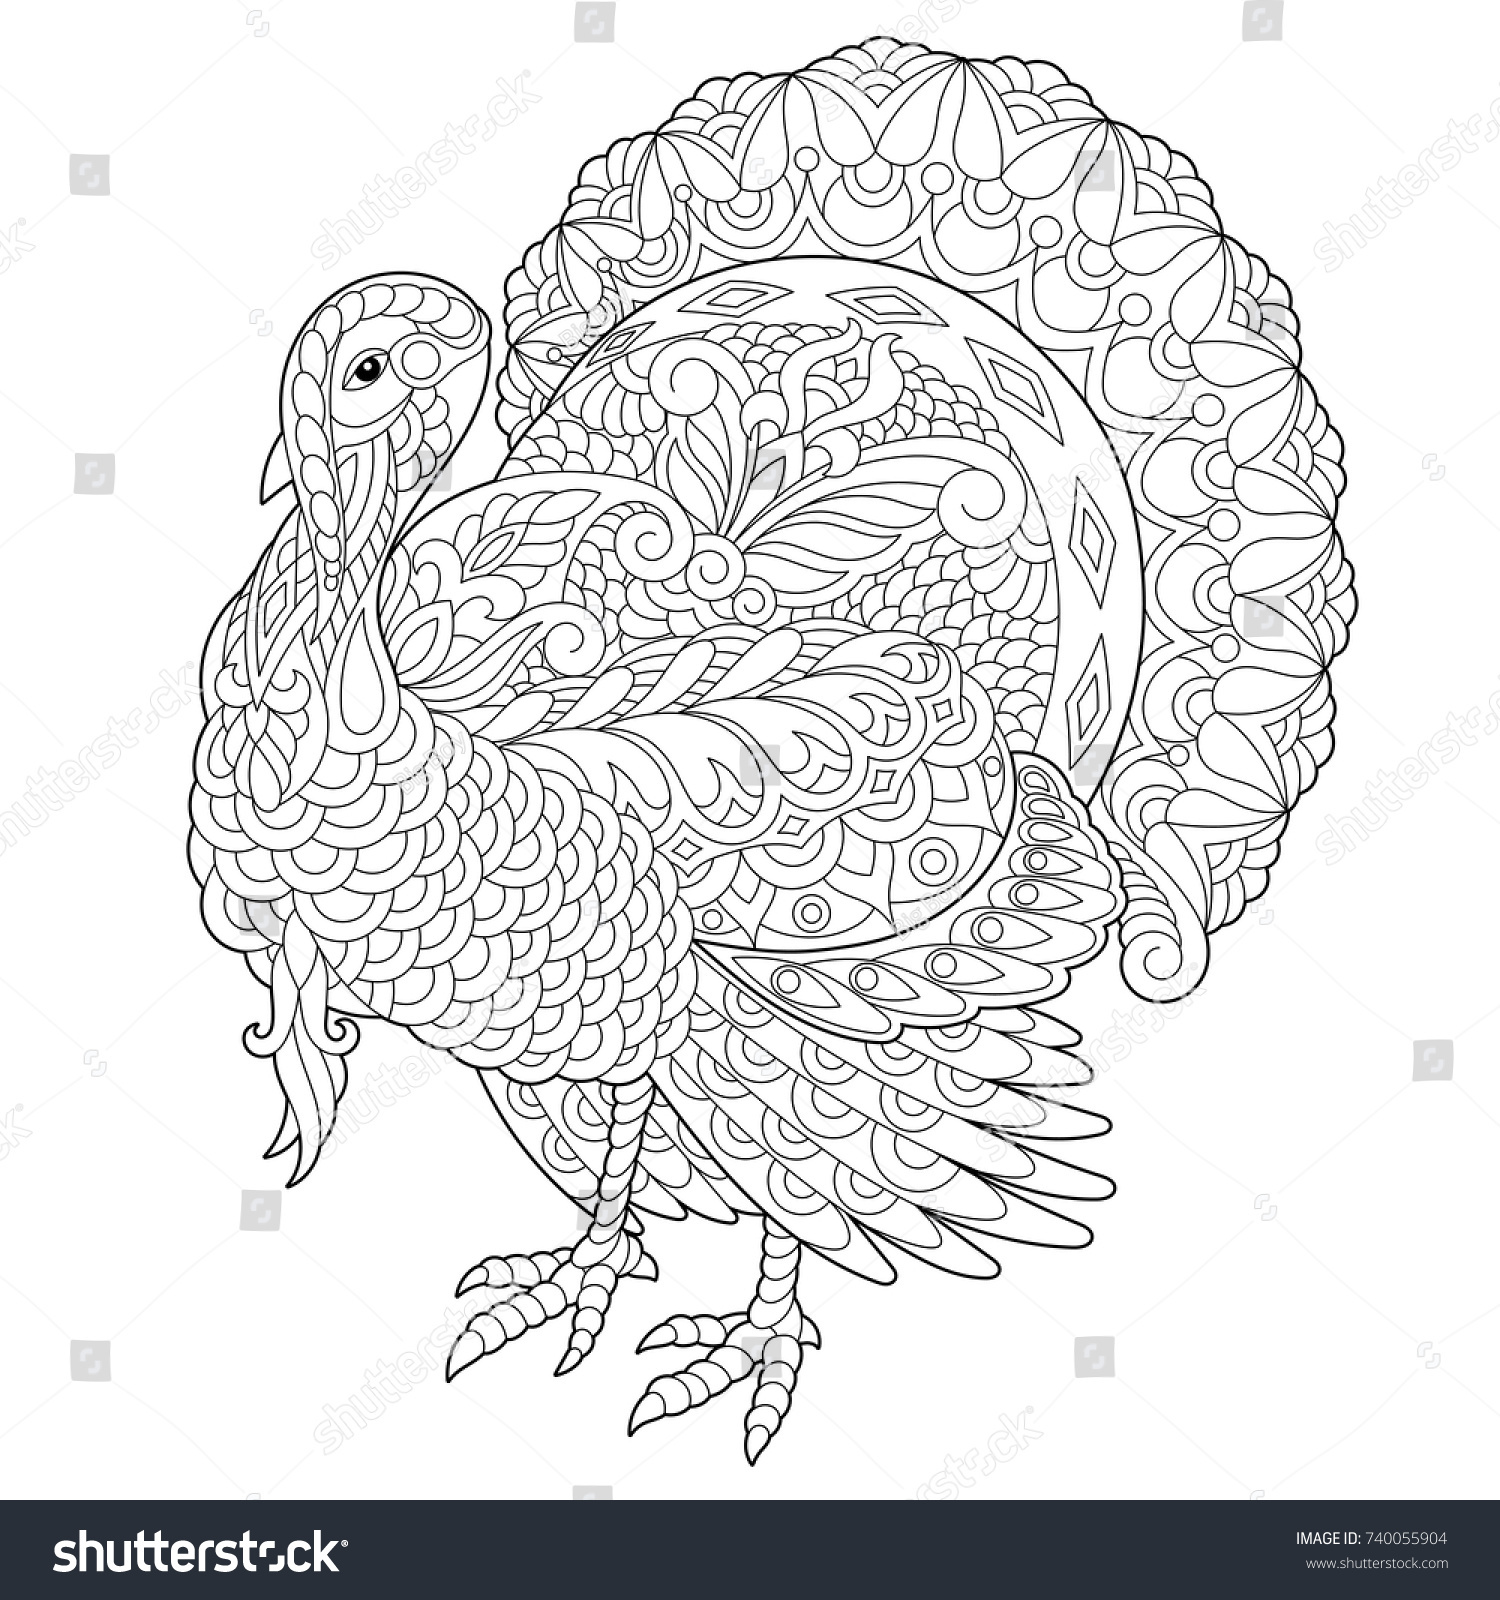 Coloring Page Turkey Thanksgiving Day Greeting Stock-vektorgrafik ...